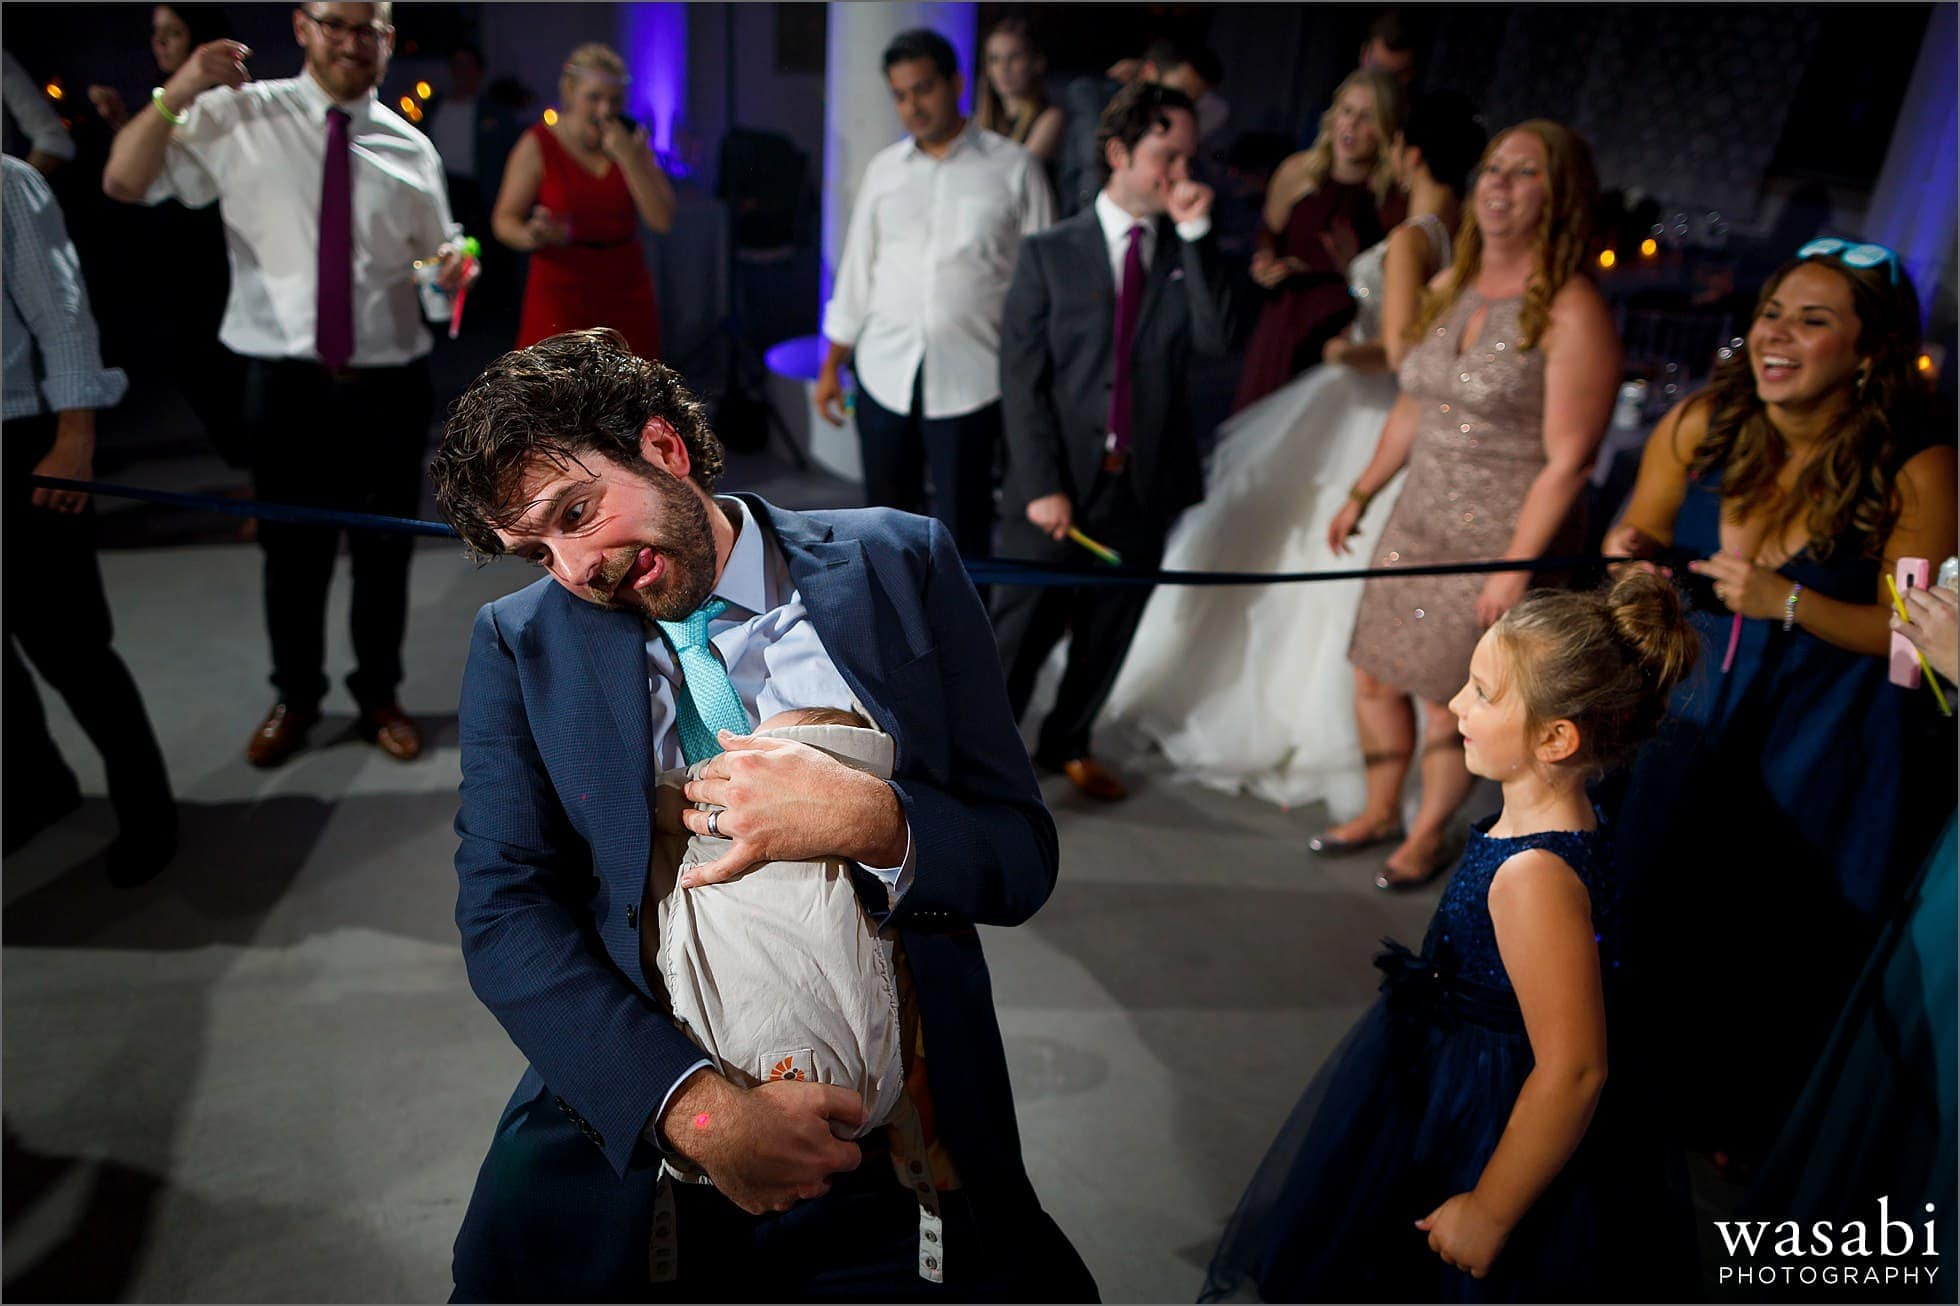 wedding guest limbo with baby during wedding reception at Room 1520 in Chicago